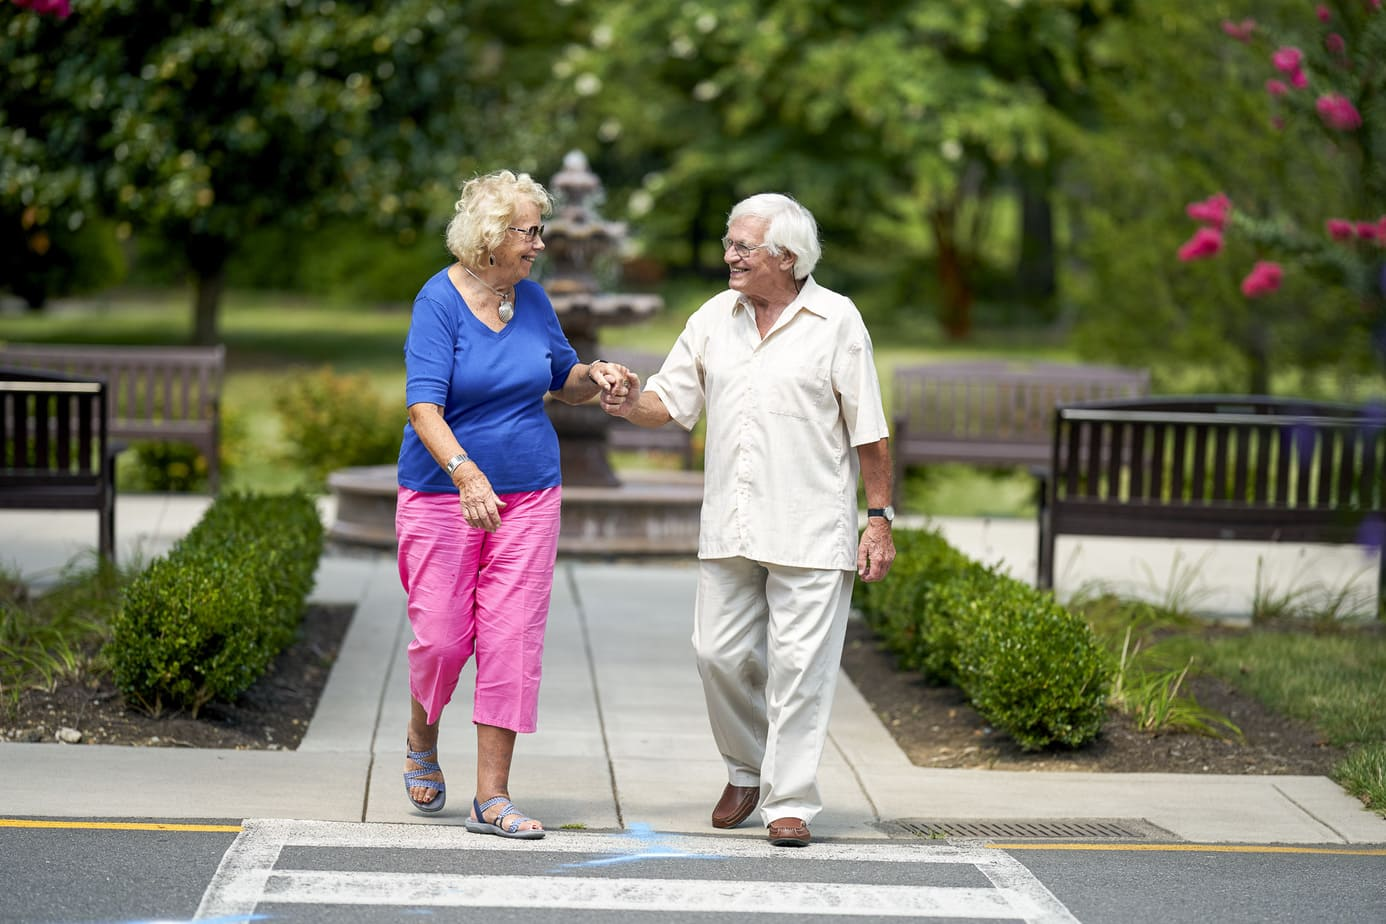 Senior Living Retirement community photography. Resident couple walking together, happy